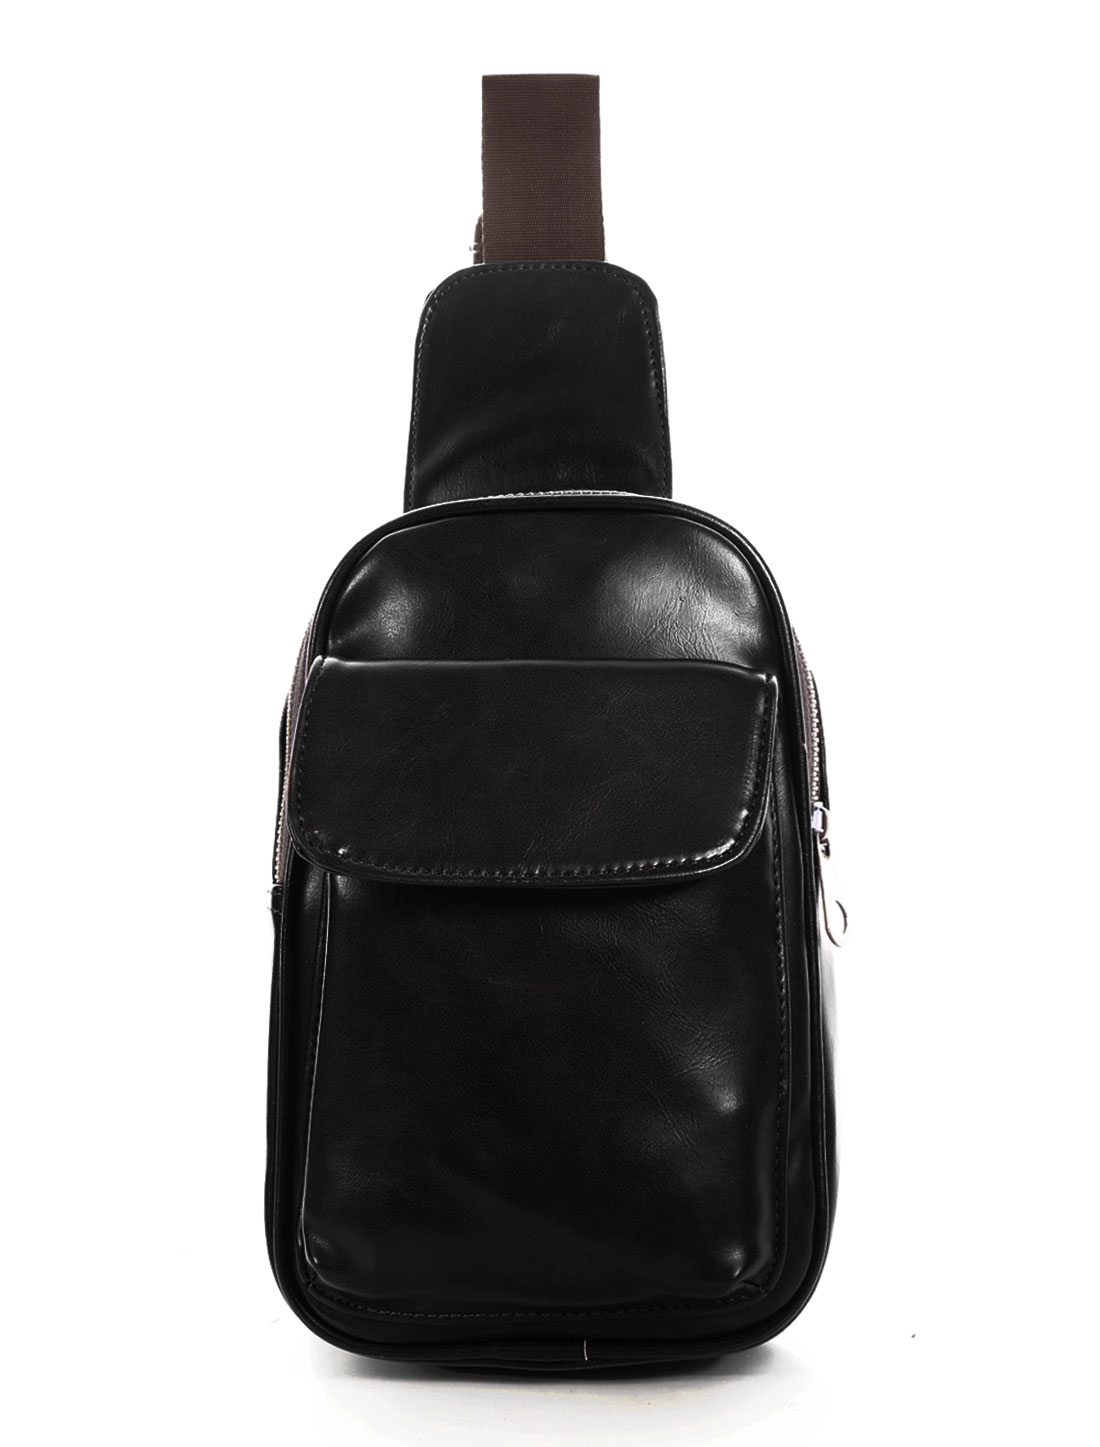 Men Adjustable Straps PU Crossbody Bum Bag Black